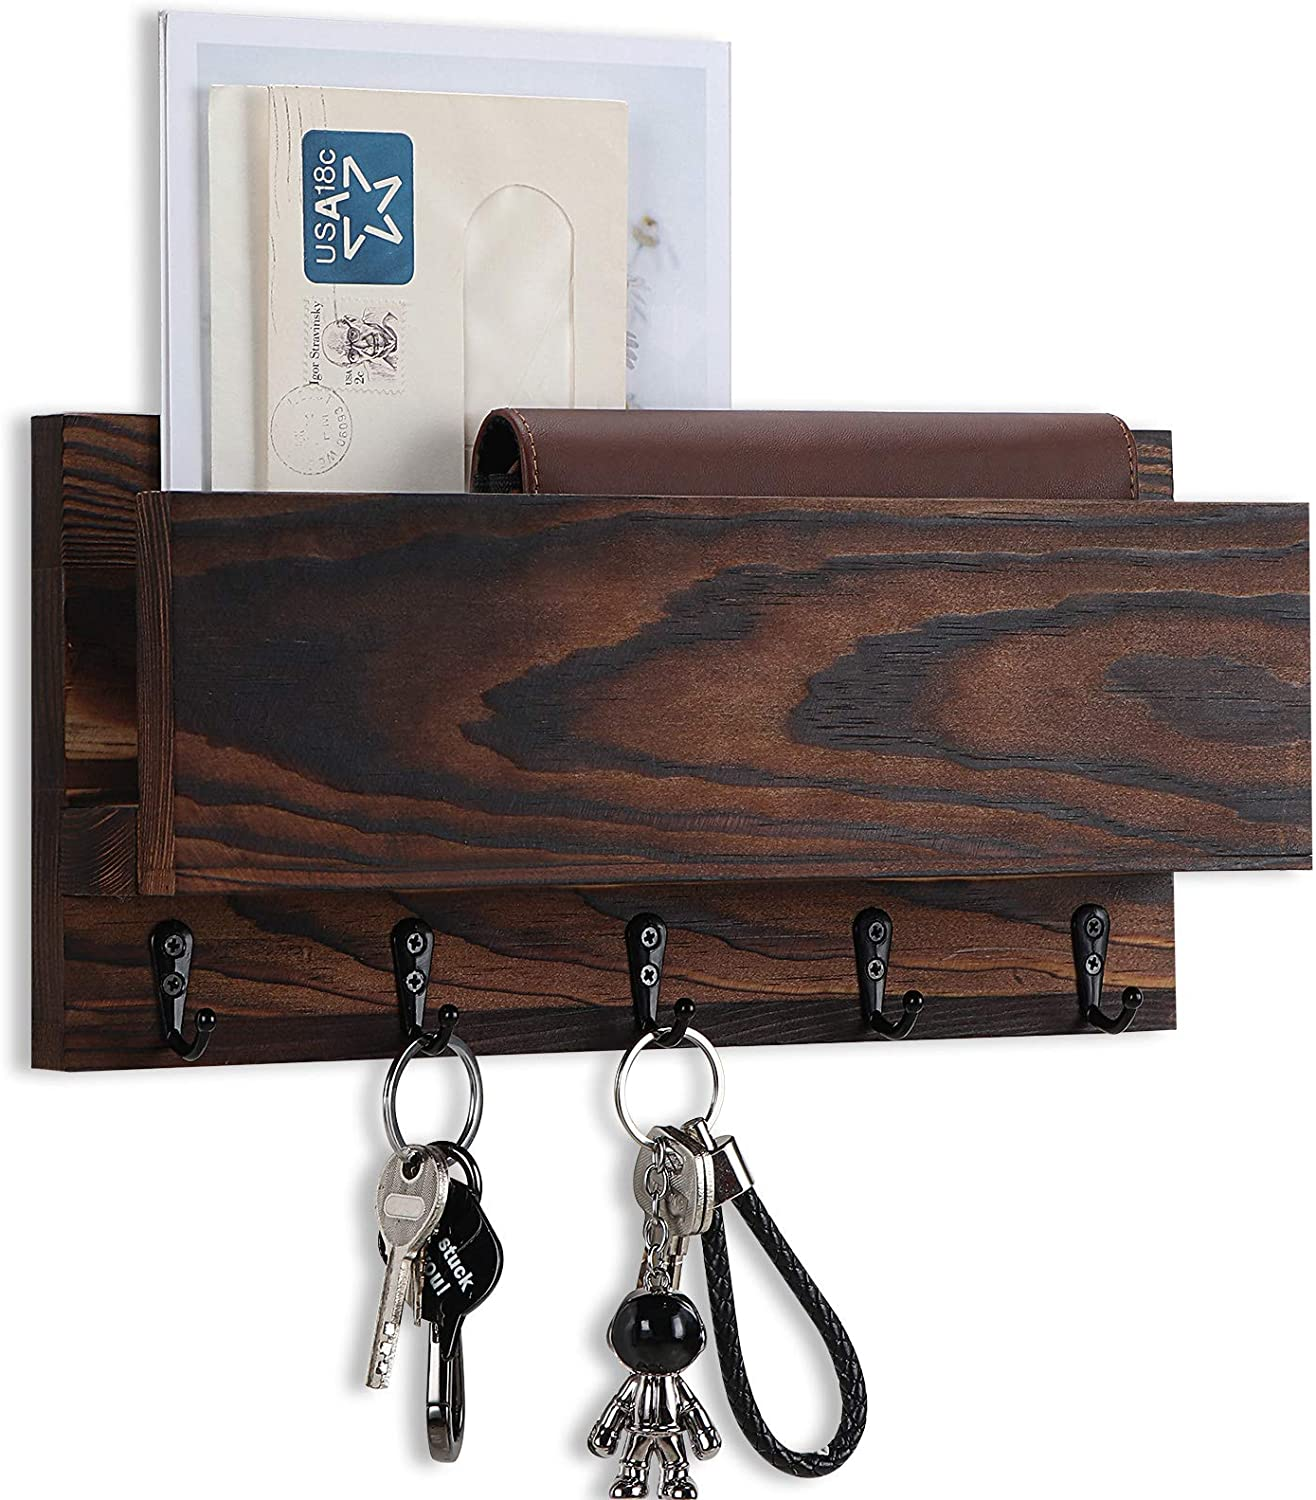 Wooden Key and Mail Holder for Wall Decorative, Rustic Wall Mounted Entryway Organizer with 5 Key Hooks - Perfect Home Hanging Decor for Entryway, Office, 100% Pine Wood (Brown)